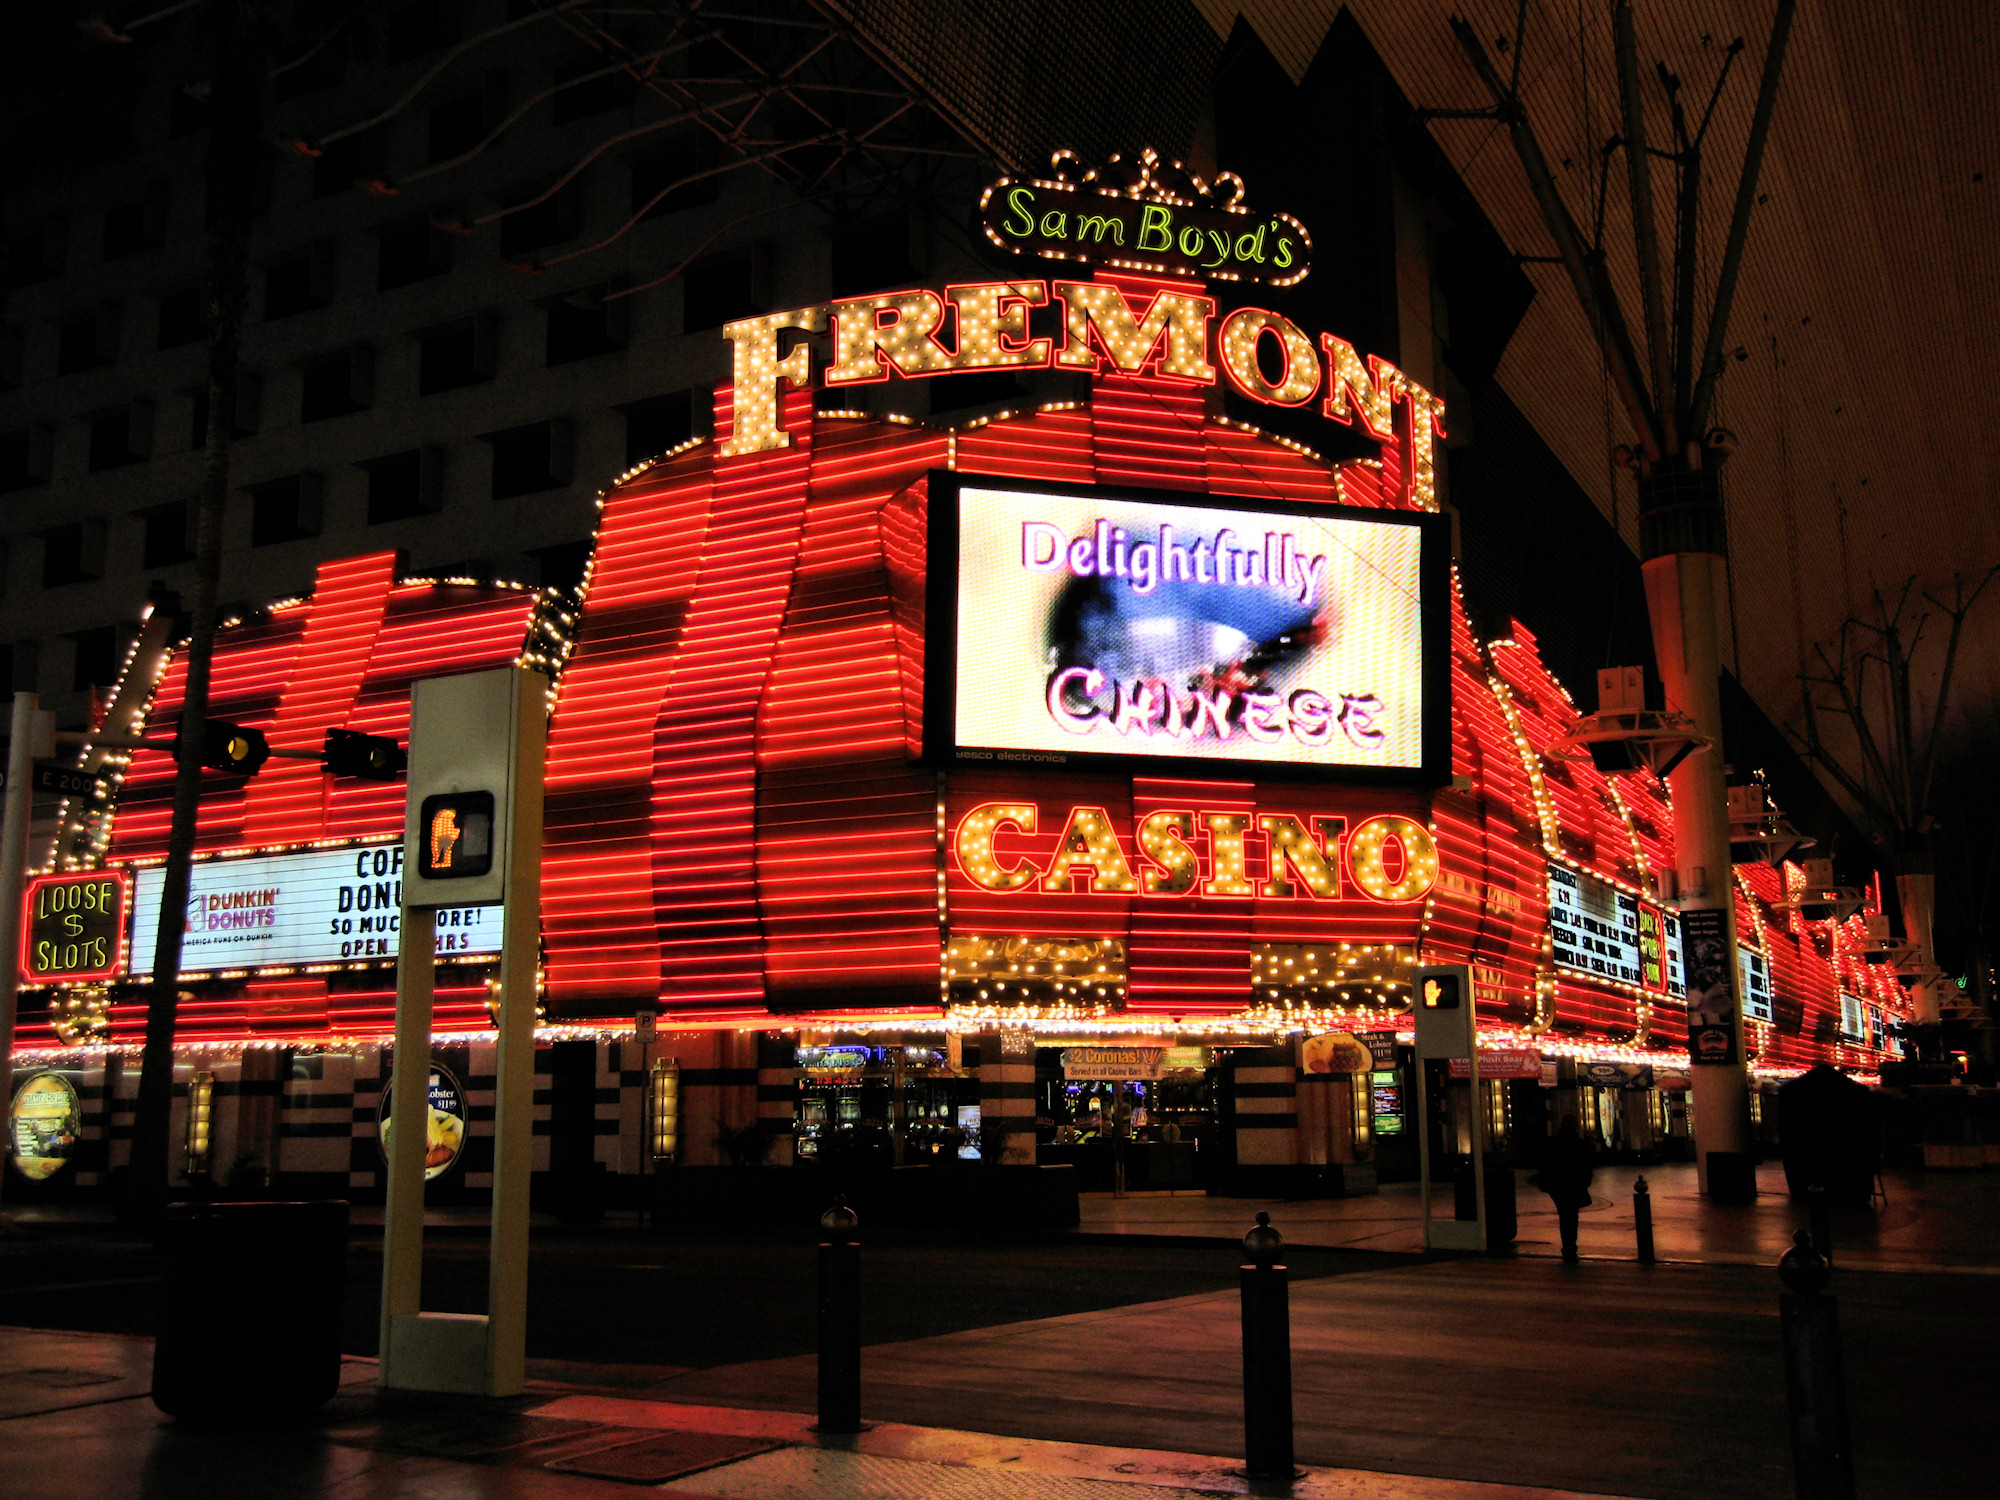 Boyds fremont casino may have their license revoked in las vegas